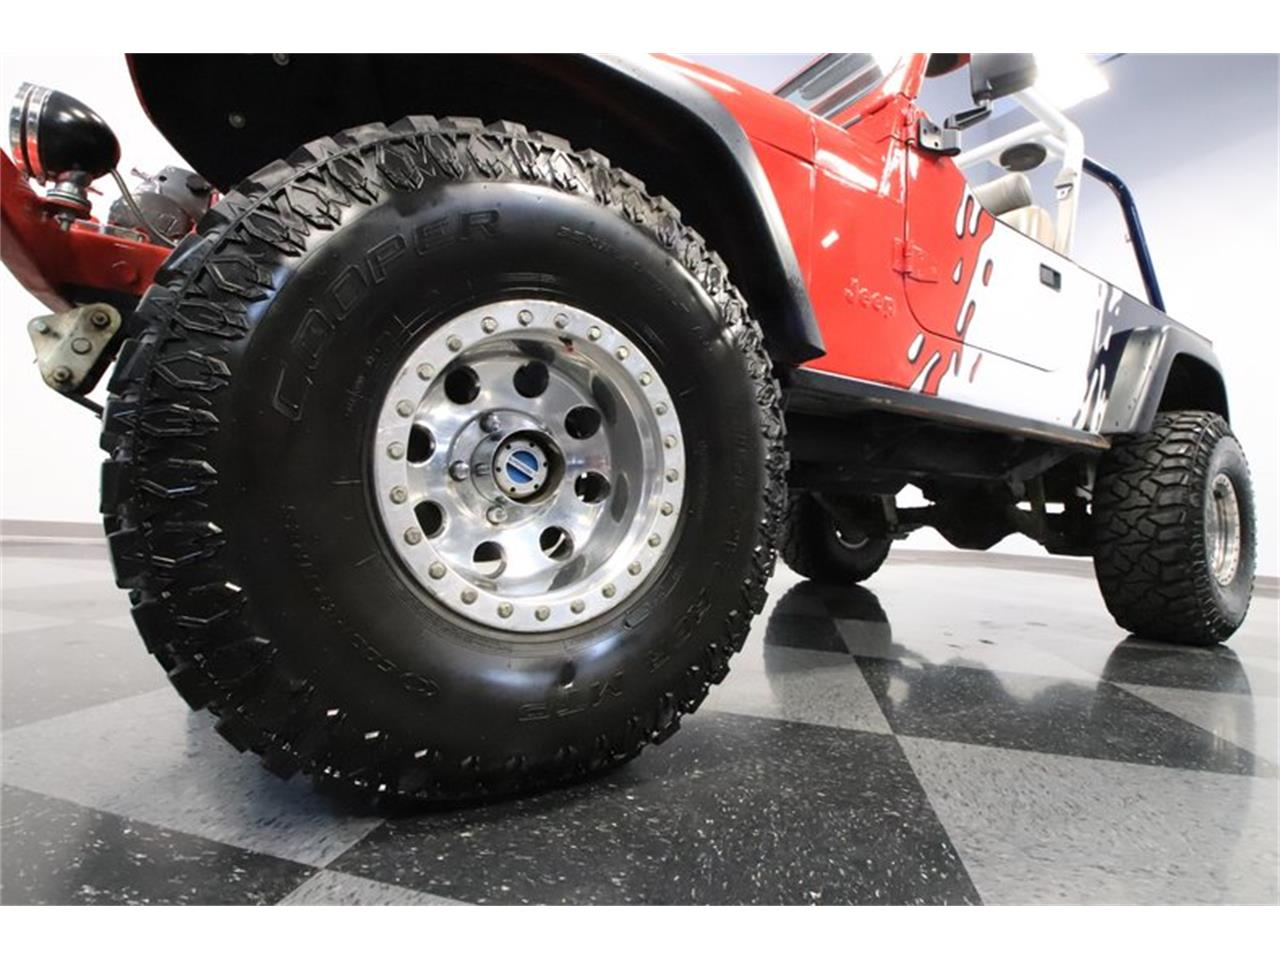 Large Picture of '83 CJ8 Scrambler located in Mesa Arizona Offered by Streetside Classics - Phoenix - Q5HM